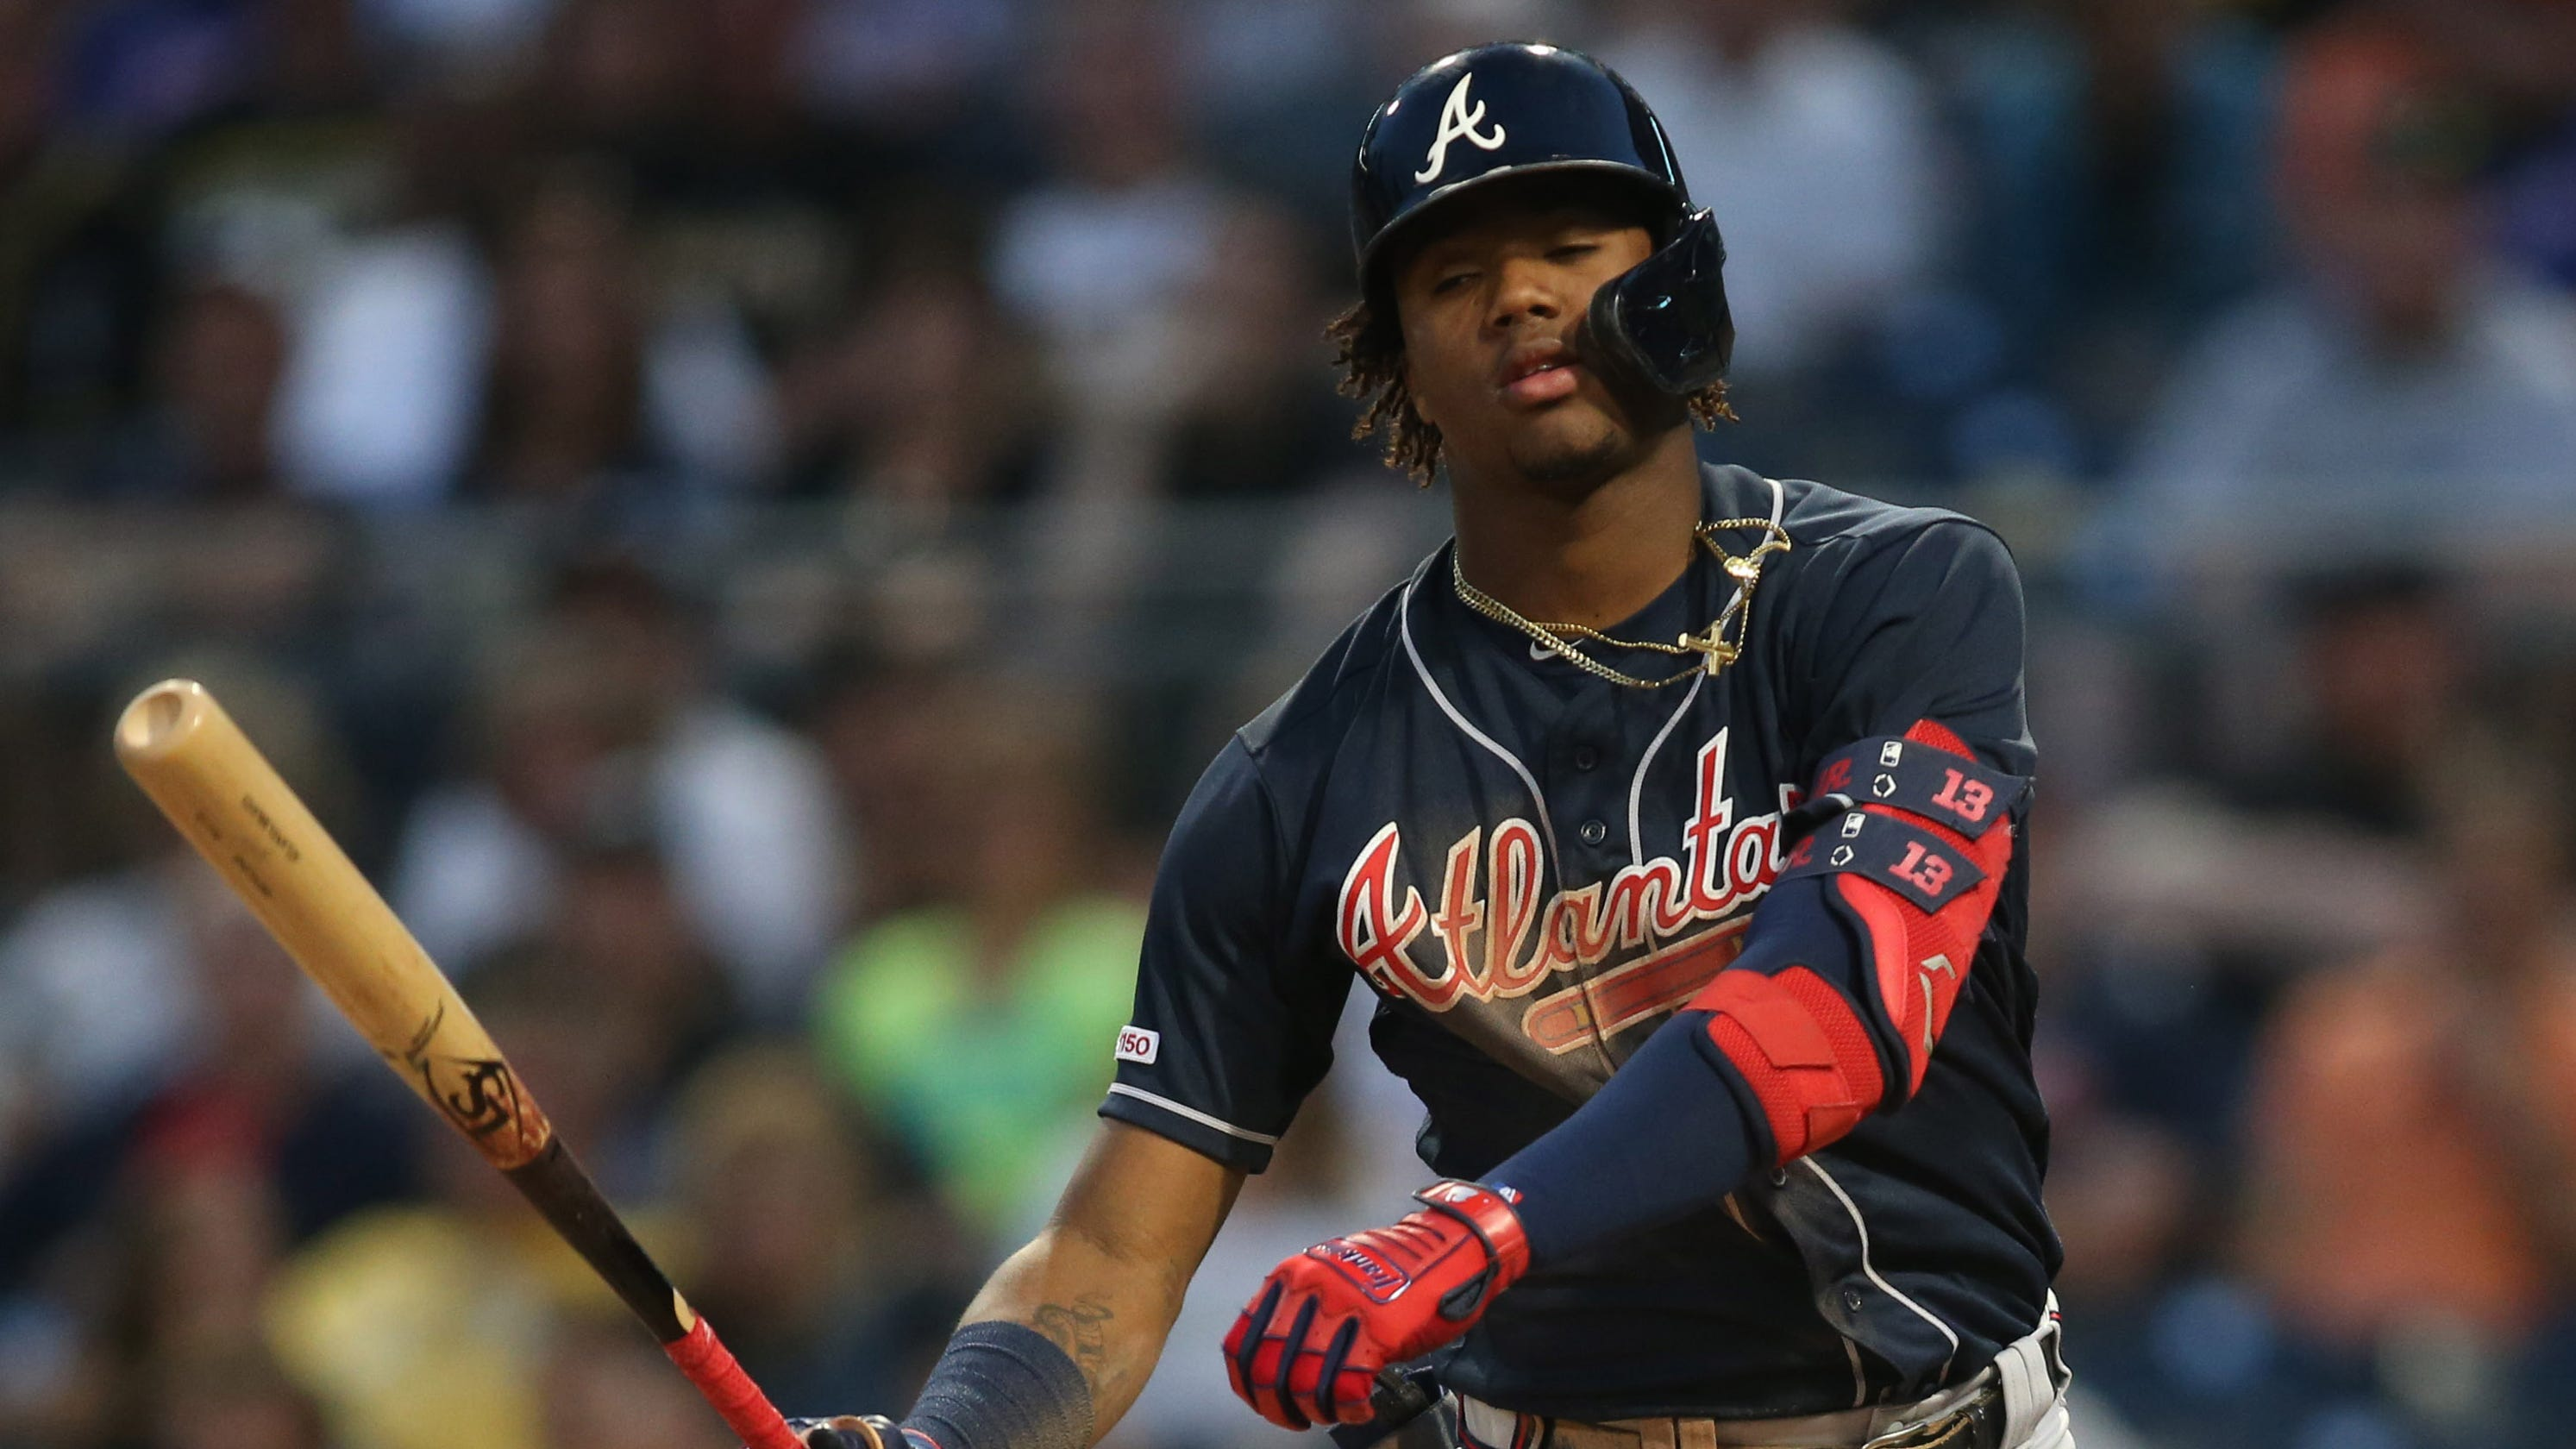 MLB: Broadcaster Rips Ronald Acuna Jr. For Jewelry After